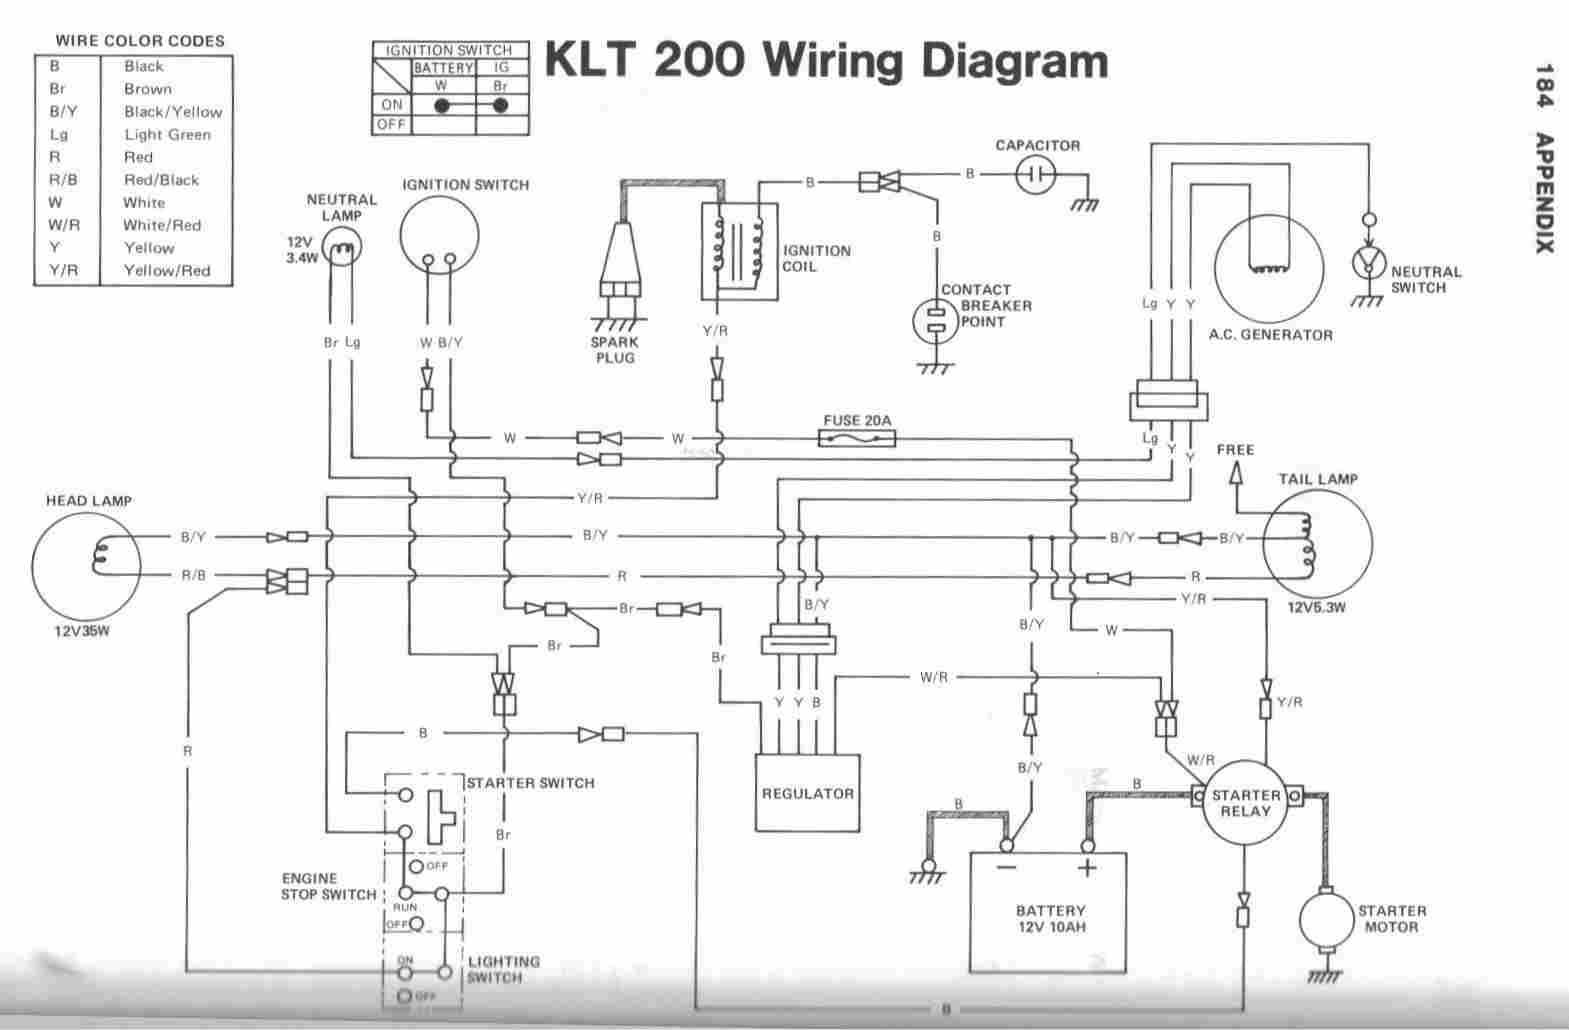 Basic Wiring Diagram For House : Residential electrical wiring diagrams pdf easy routing